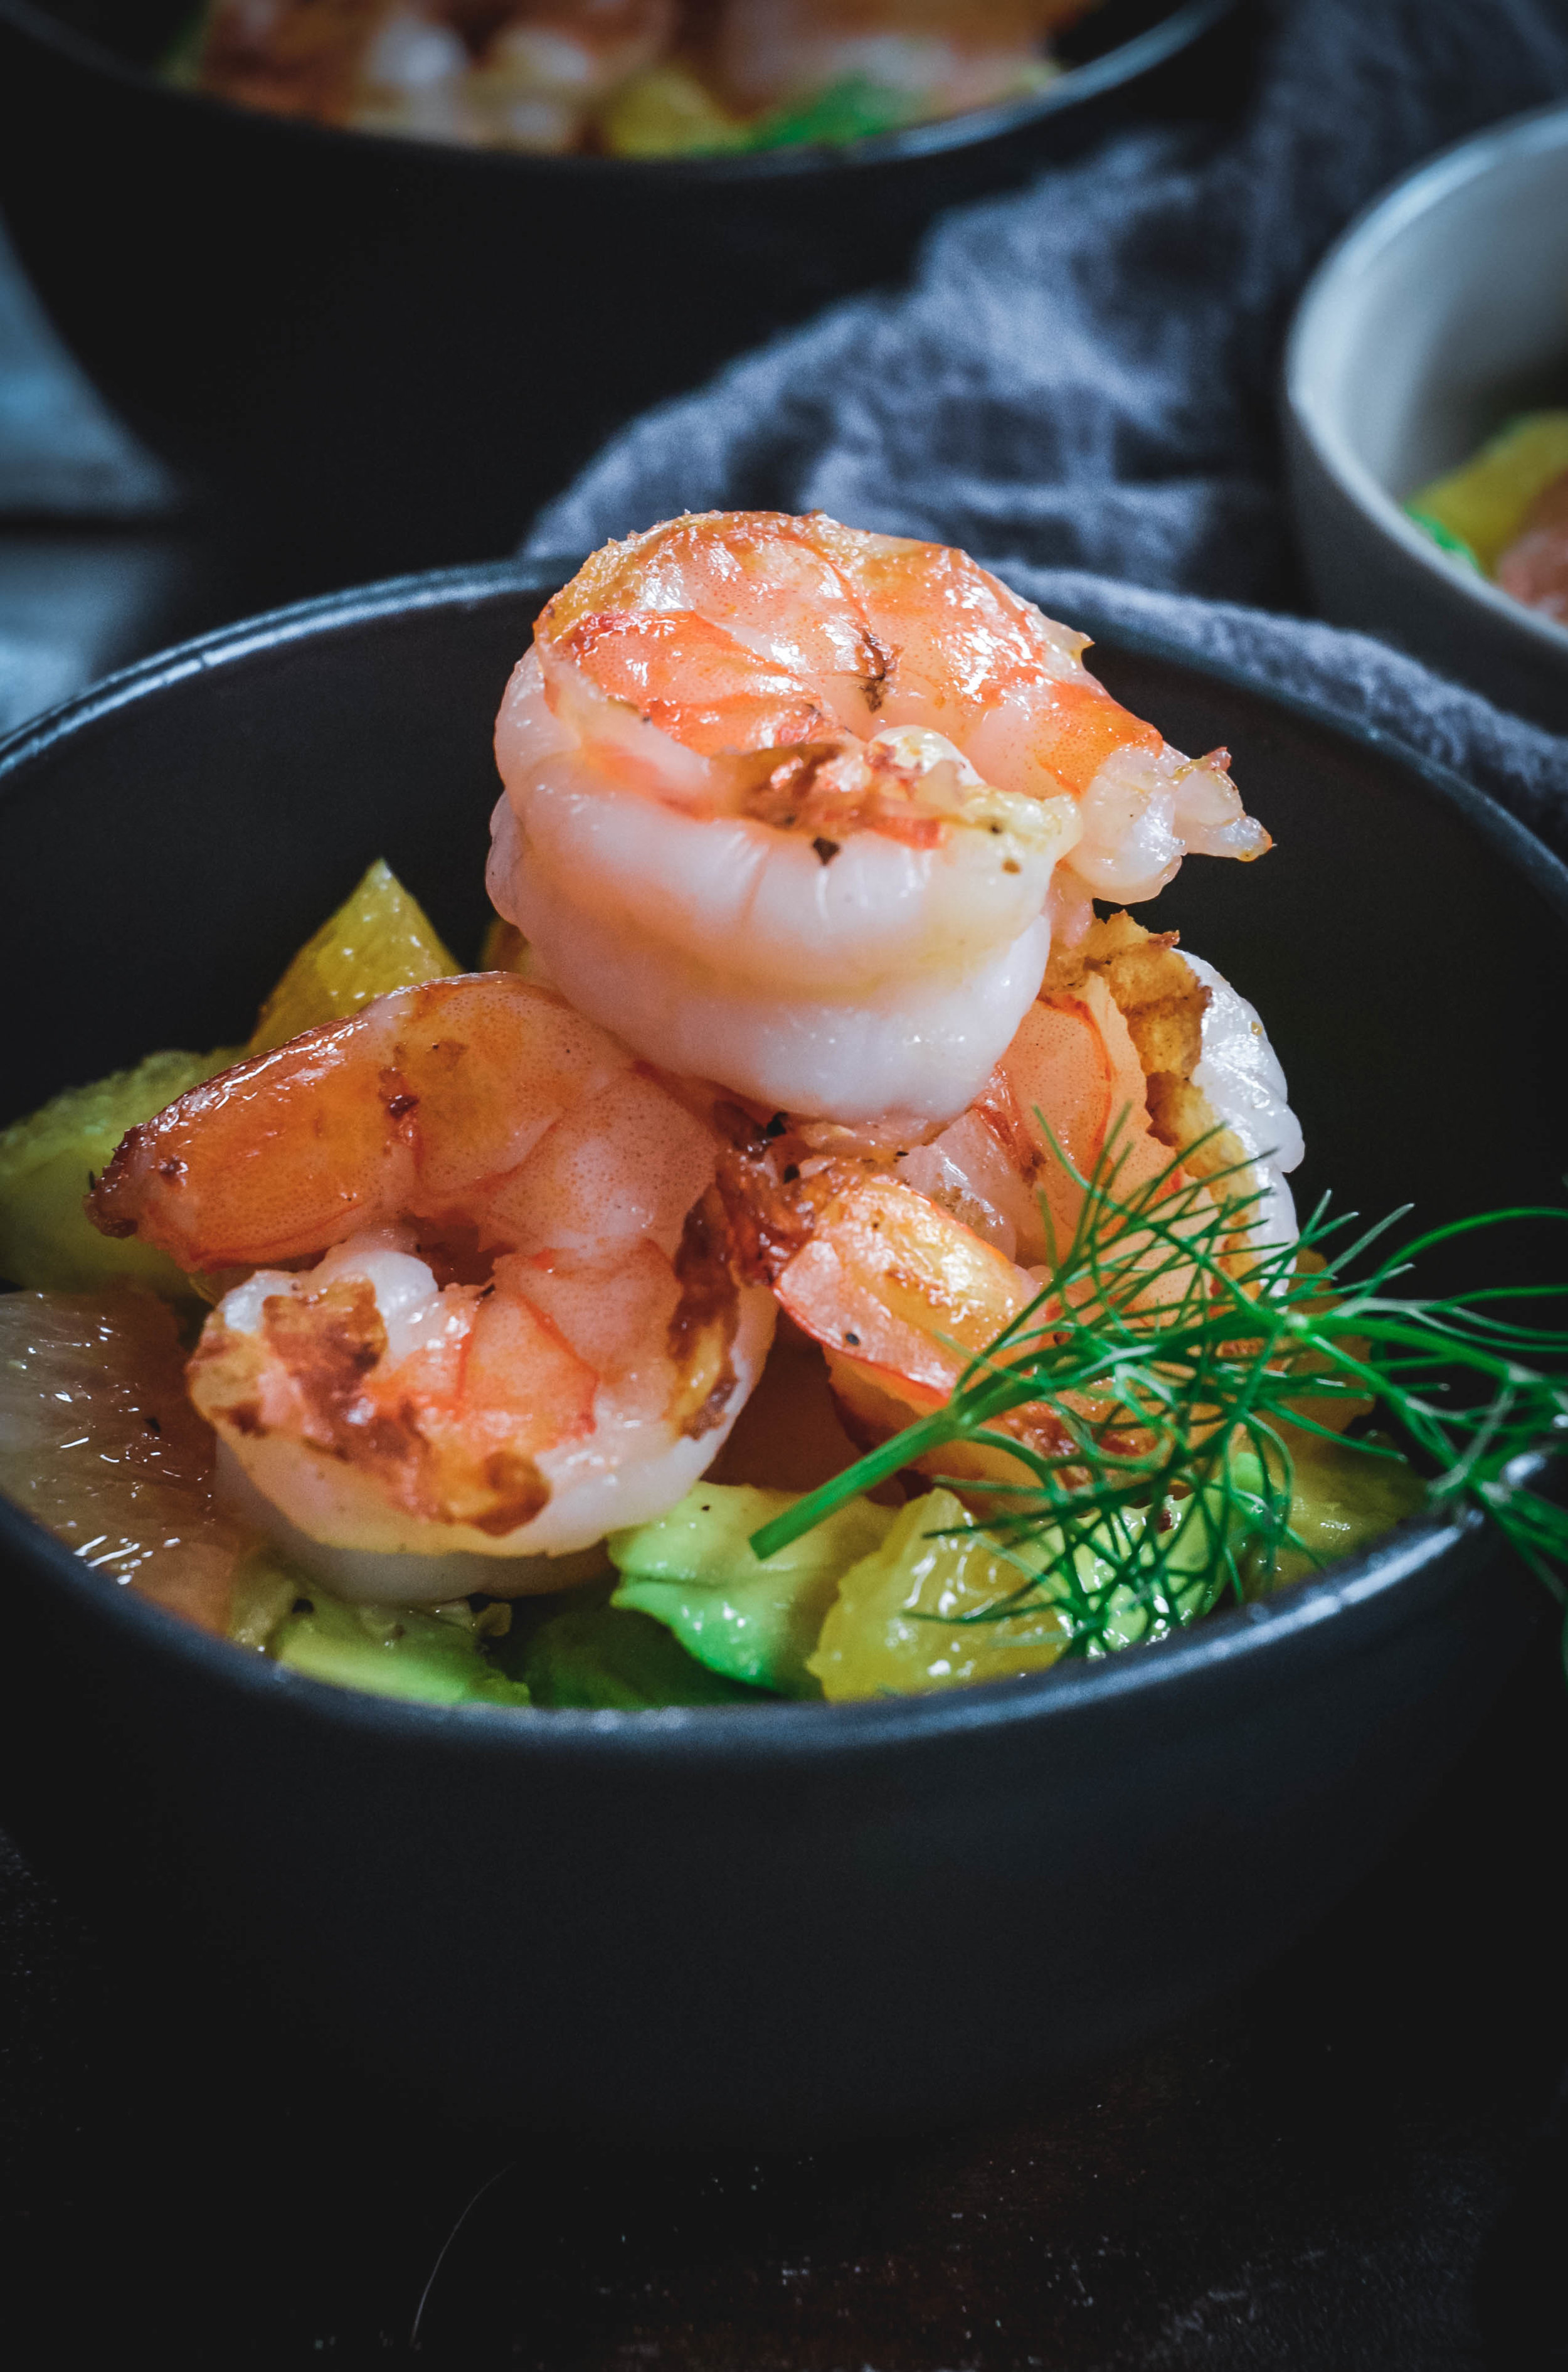 If you're looking for a healthy and easy shrimp salad, try this fennel, avocado and citrus salad topped with grilled shrimp. It's a burst of flavor in every single bite. This shrimp salad is also paleo and whole 30 approved. #shrimpsalad #shrimp #seafood #citrussalad #citrus #avocado #paleosalad #whole30sdalad #calmeats #whole30recipes #paleorecipes #seafoodrecipes #easyseafoodrecipes #simpleseafoodrecipes #quickrecipes